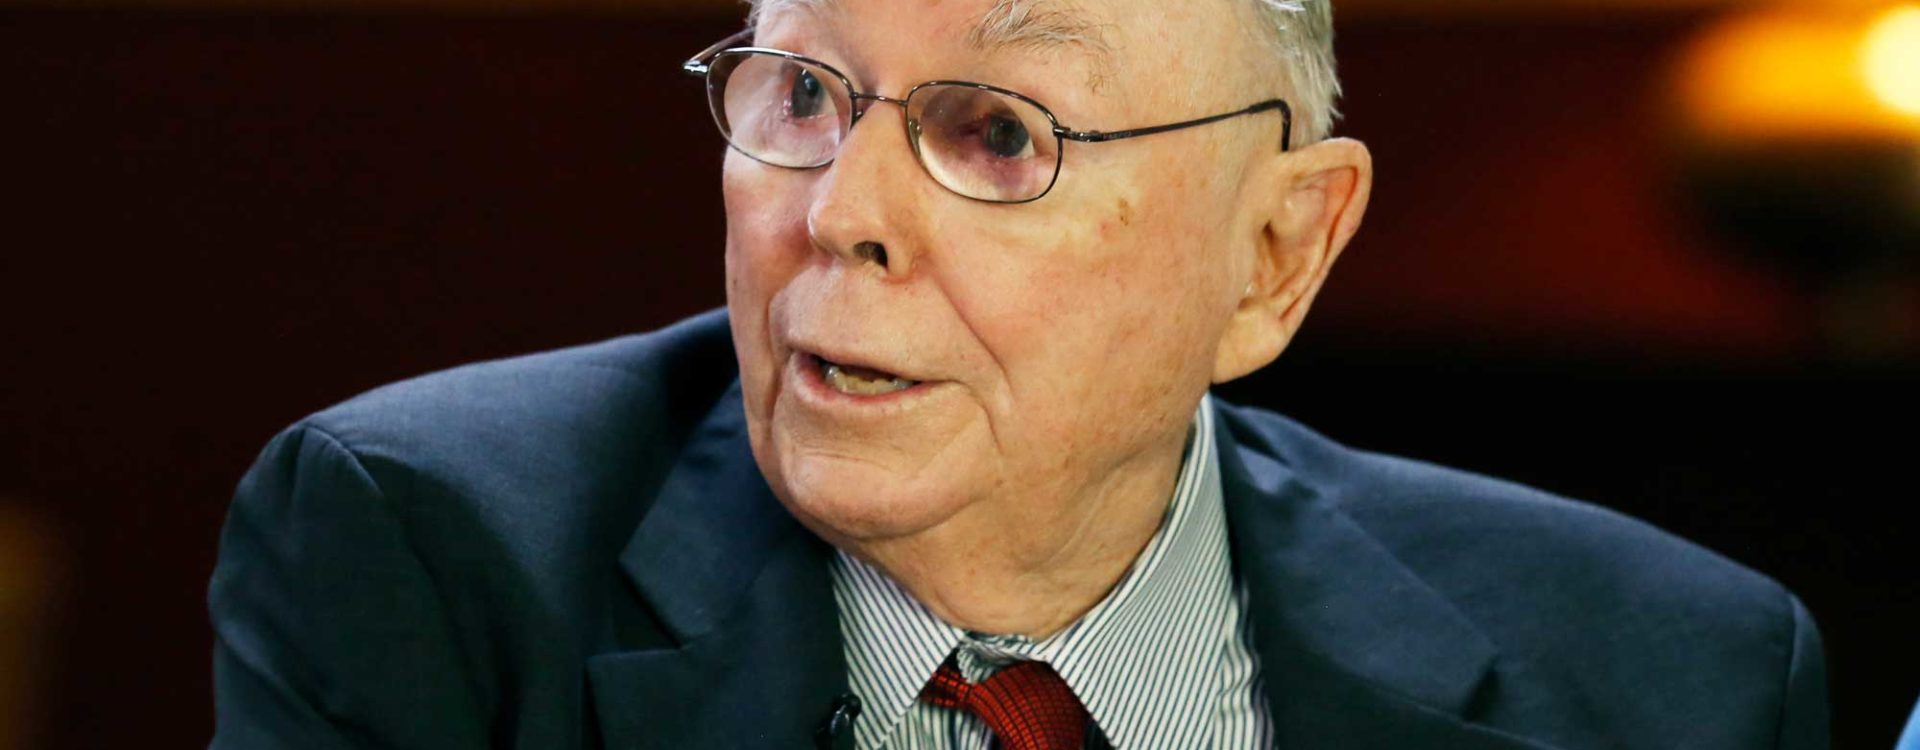 Charlie Munger will not take questions at Berkshire's annual meeting